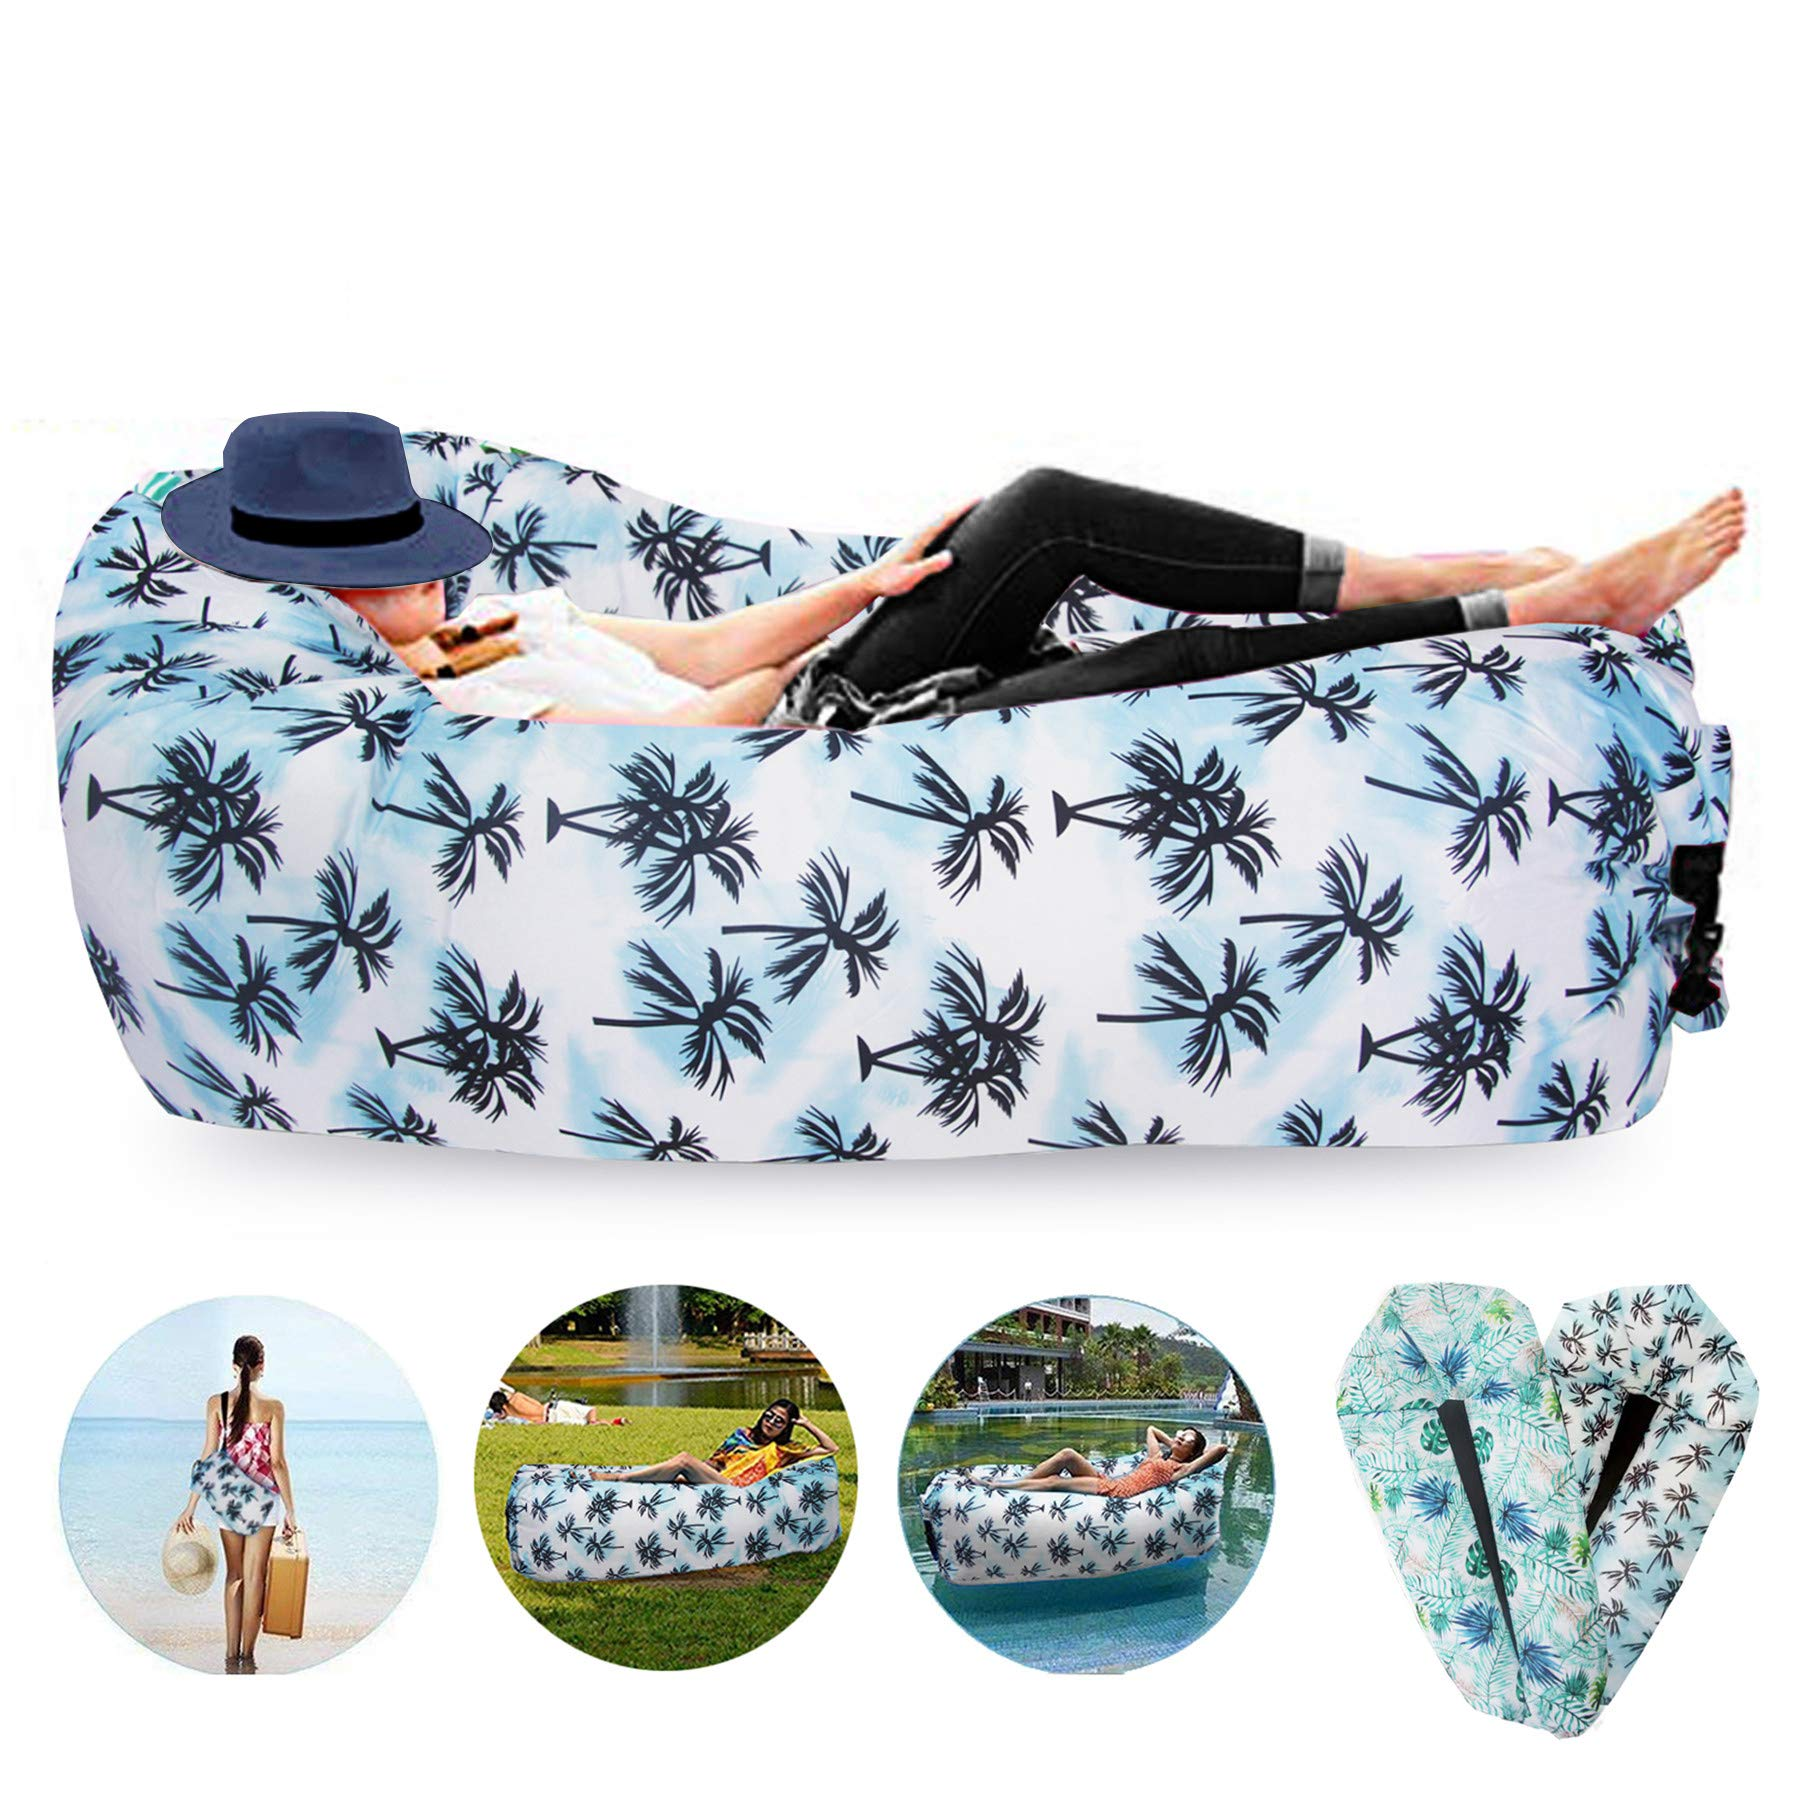 FORNY Air Chair Float Sofa Inflatable Couch Lounger Hommock Portable Picnic Outdoor Use for Camping Hiking Beach Pool (airsofa2) by FORNY